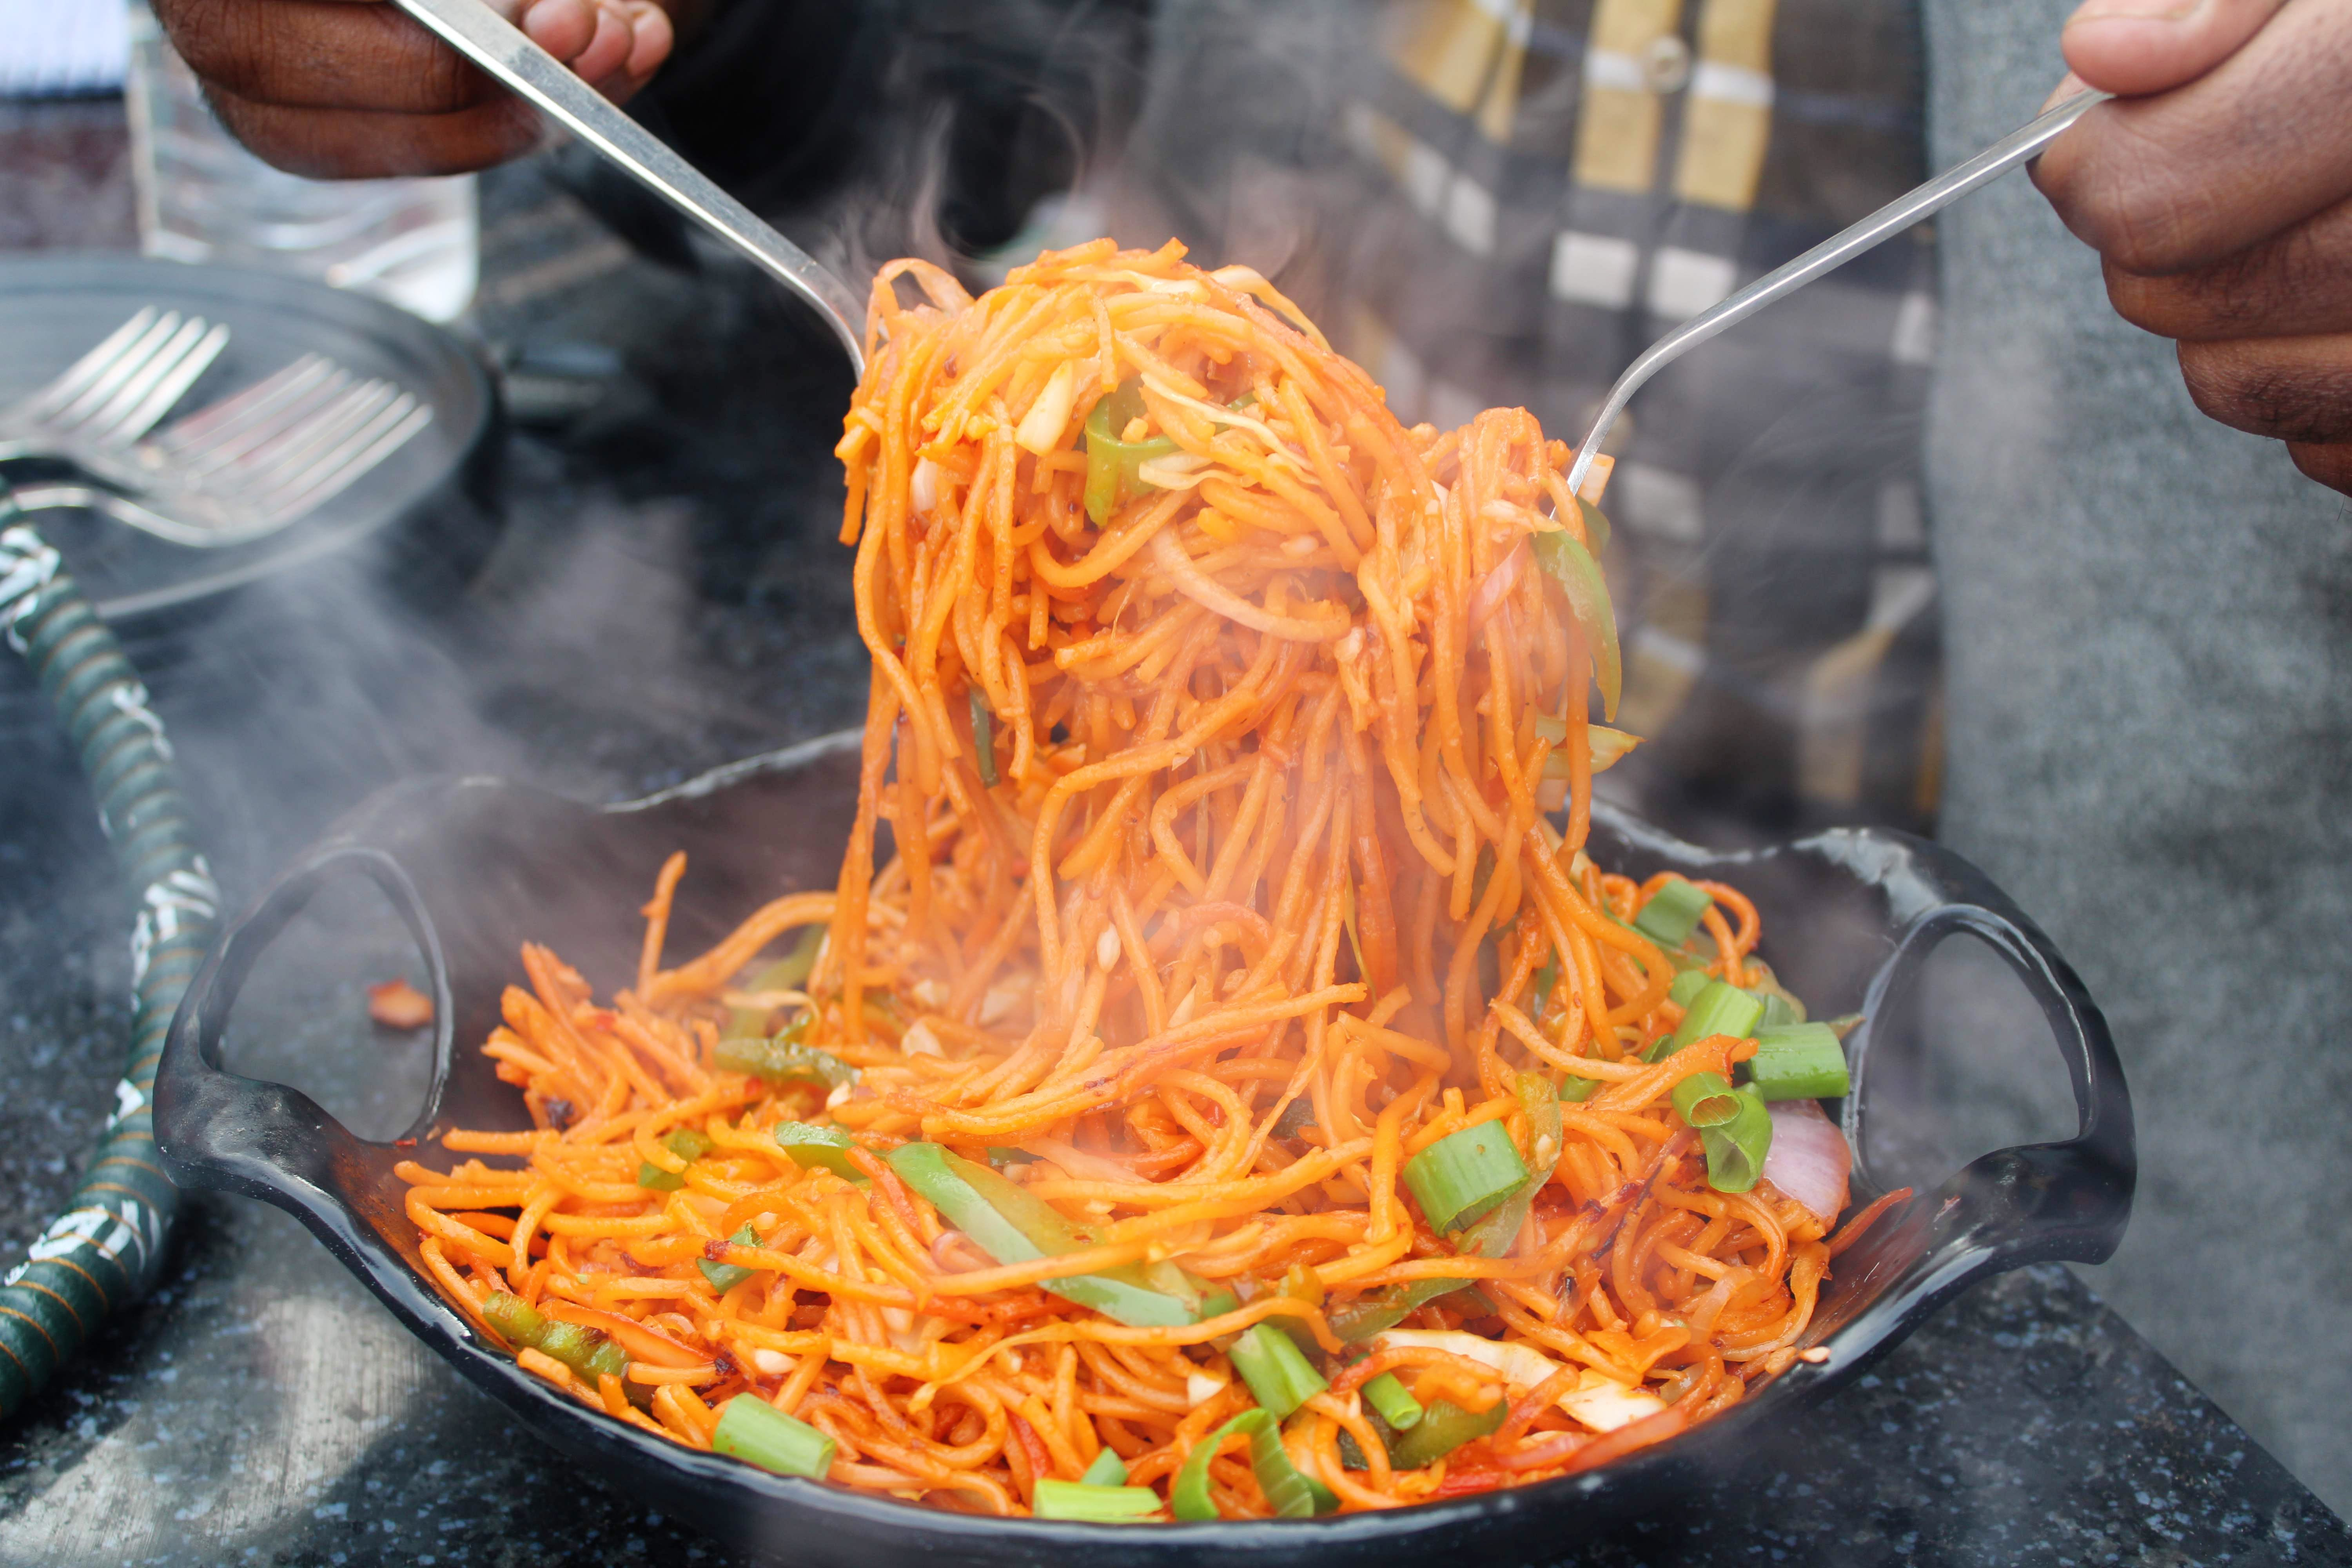 Dish,Food,Cuisine,Naporitan,Ingredient,Chow mein,Noodle,Pad thai,Spaghetti,Chinese noodles